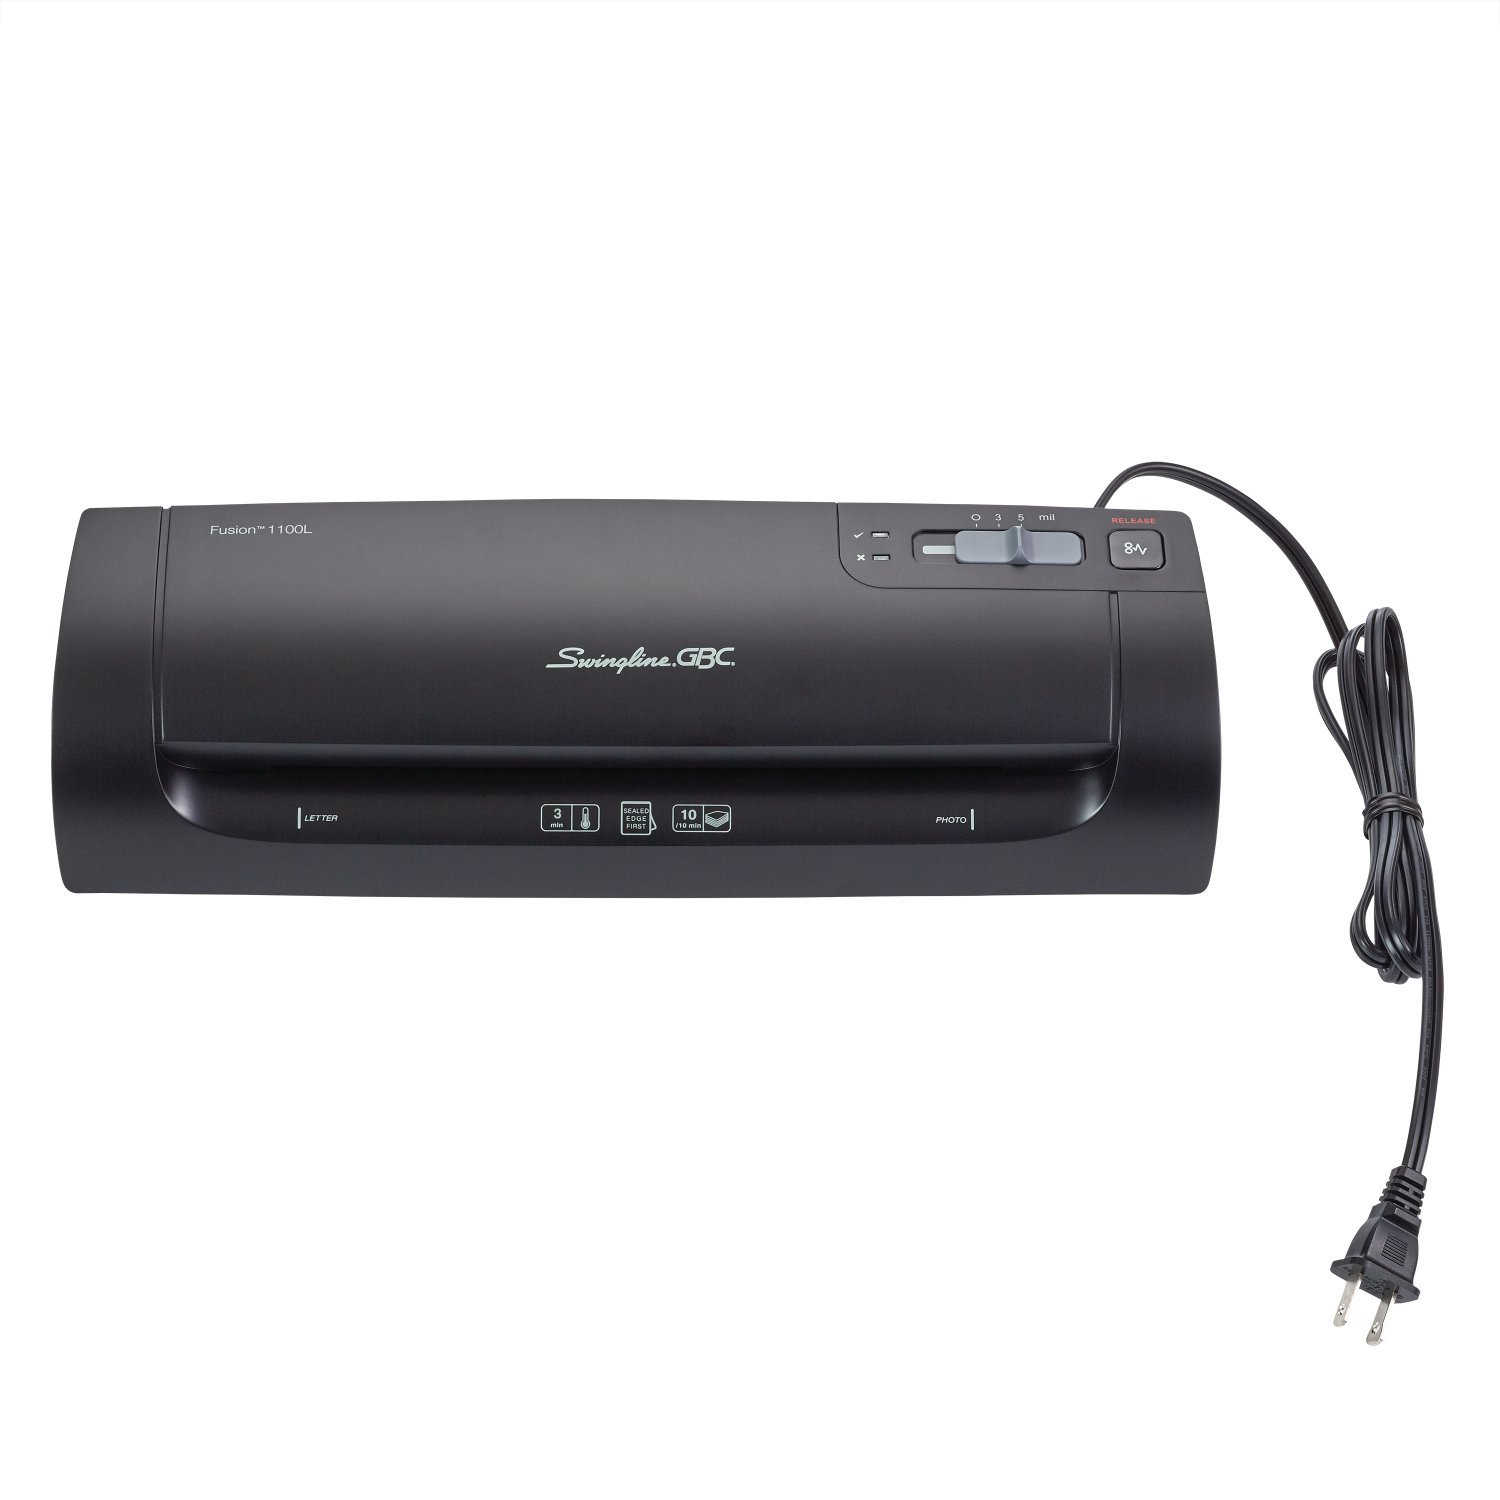 Swingline GBC Thermal Laminator Machine, Fusion 1100L, 9 Inch, 4 Min Warm-up, 3 or 5 Mil, with 10 EZUse Laminating Pouches (1703074)